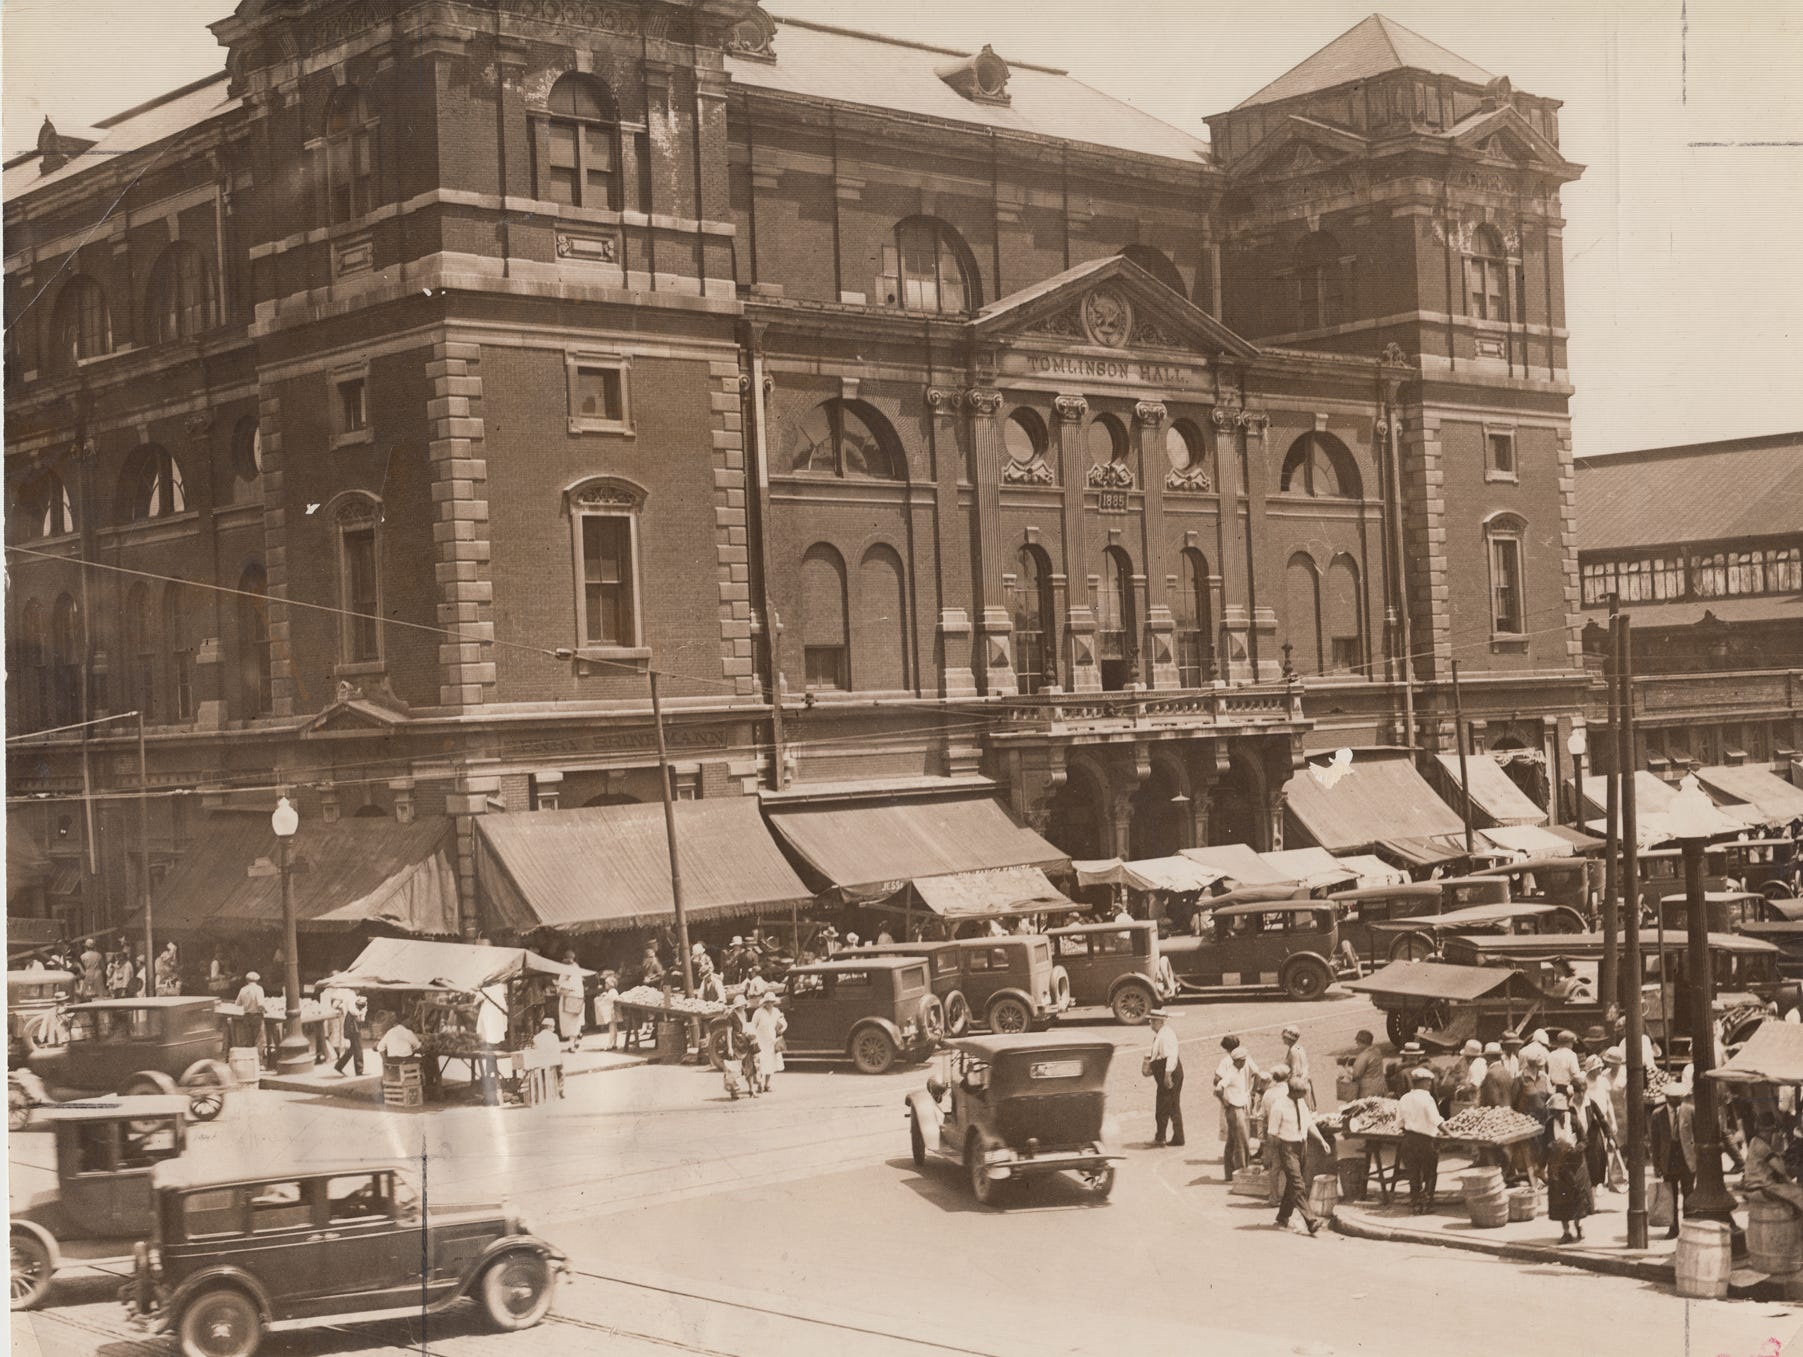 Tomlinson Hall served the city as a public meeting hall for more than 40 years. Truck farmers set up their stands at the farmer's market outside the hall on  July 7, 1927